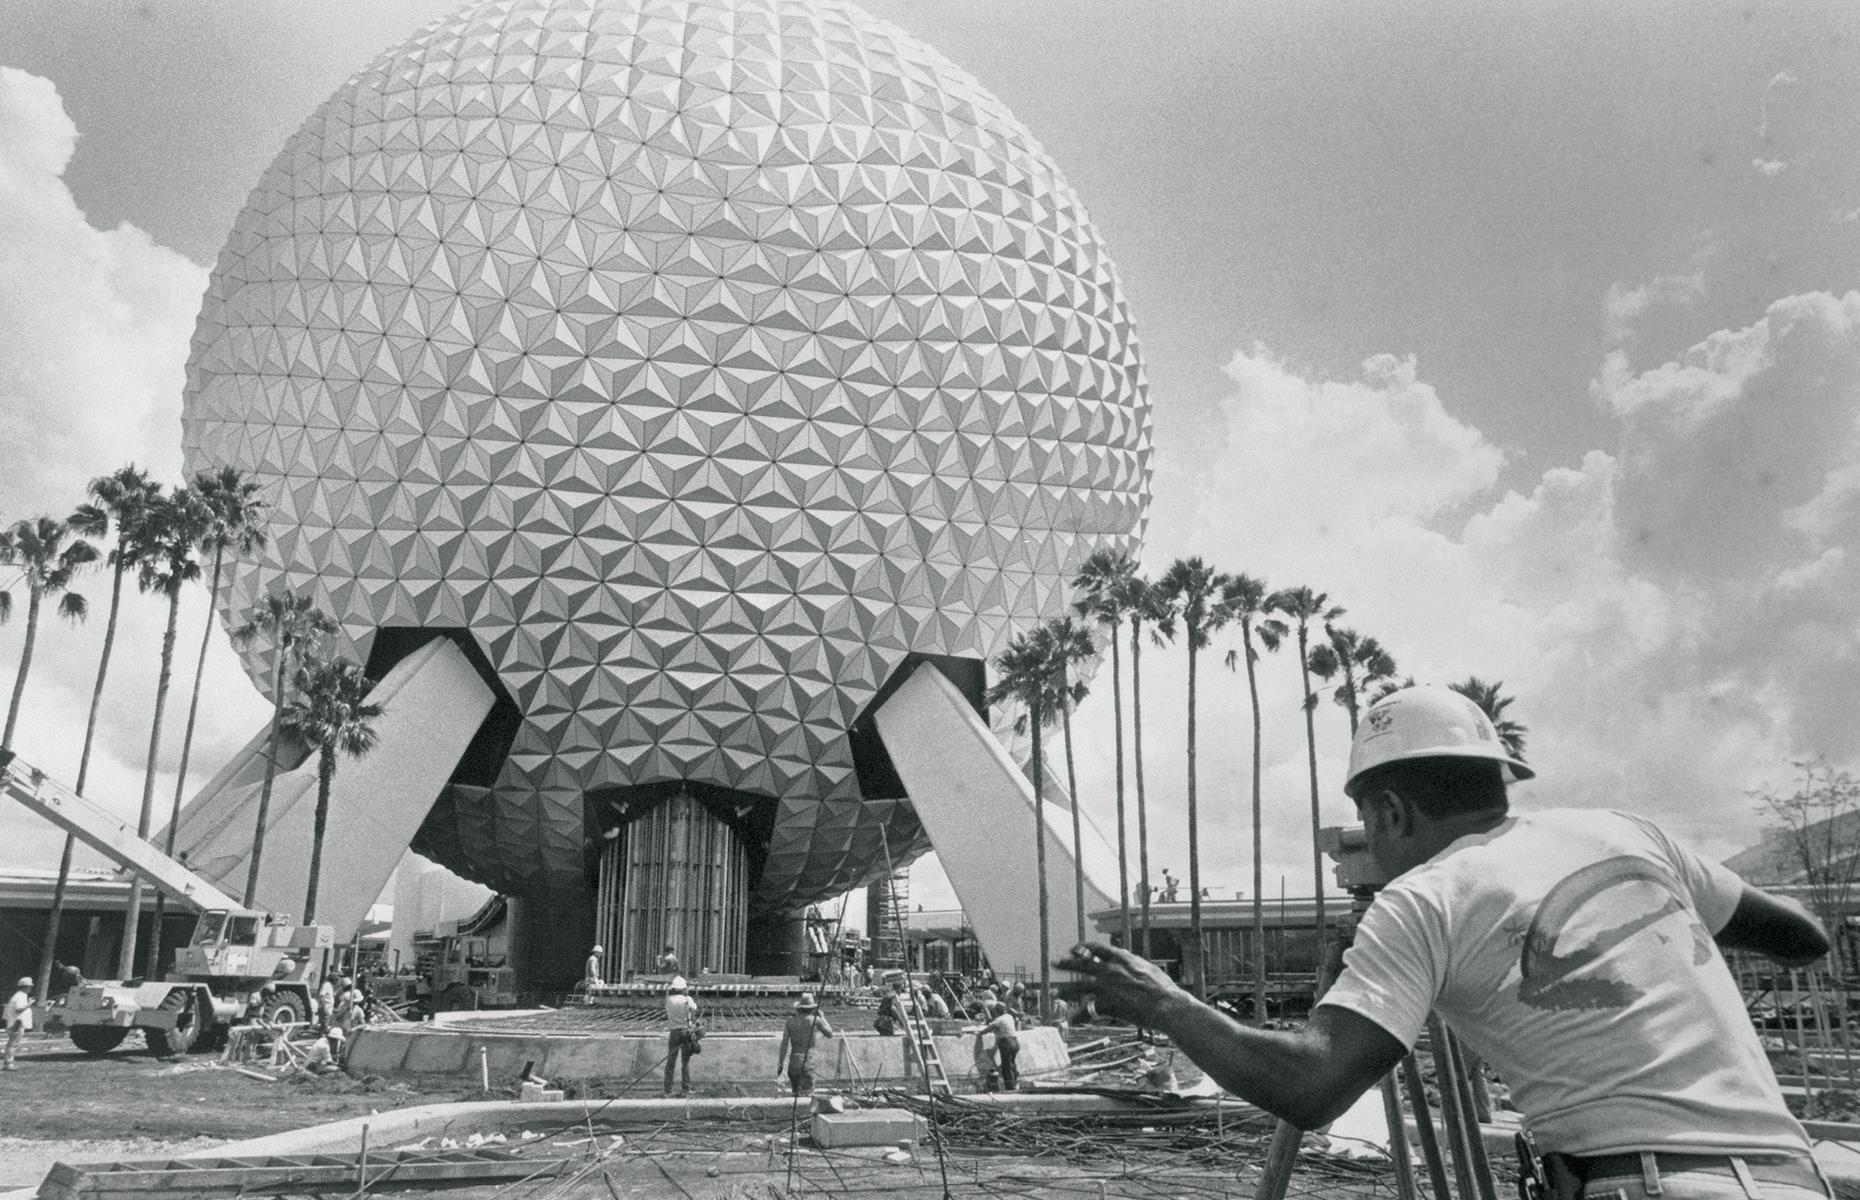 Slide 28 of 38: By the 1980s, Florida's Disney site had begun to expand into the magical juggernaut it is today. Curious, futuristic Epcot, which Disney had originally conceived to be a kind of utopian city and community, opened as a park in 1982. Its mammoth centerpiece – a geodesic sphere called Spaceship Earth – is pictured here at the center of the construction site in the early Eighties.